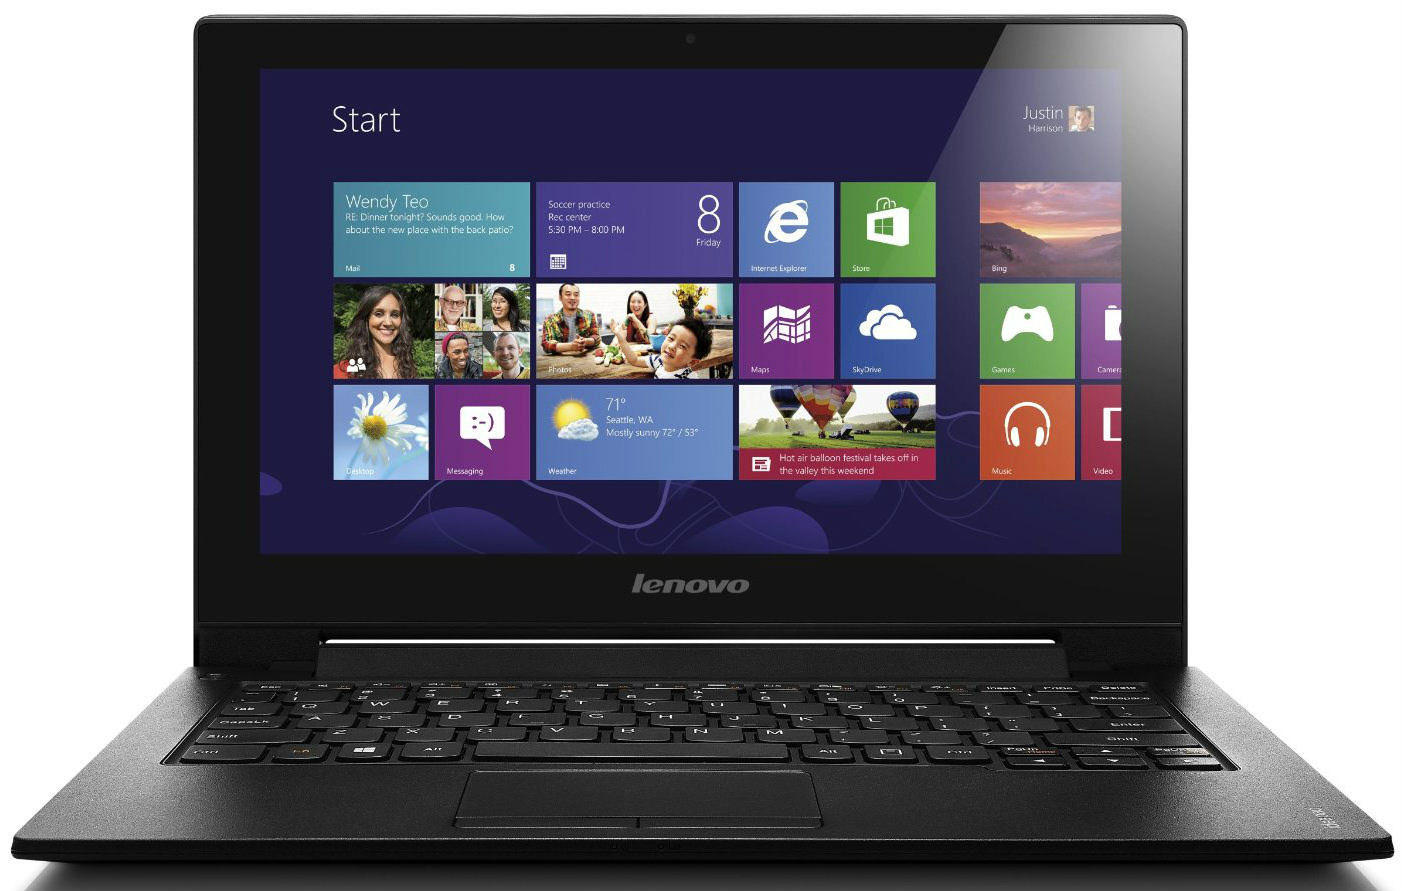 lenovo-ideapad-s210-59387503-pentium-2nd-gen-4-gb-500-gb-windows-8-61676-large-1